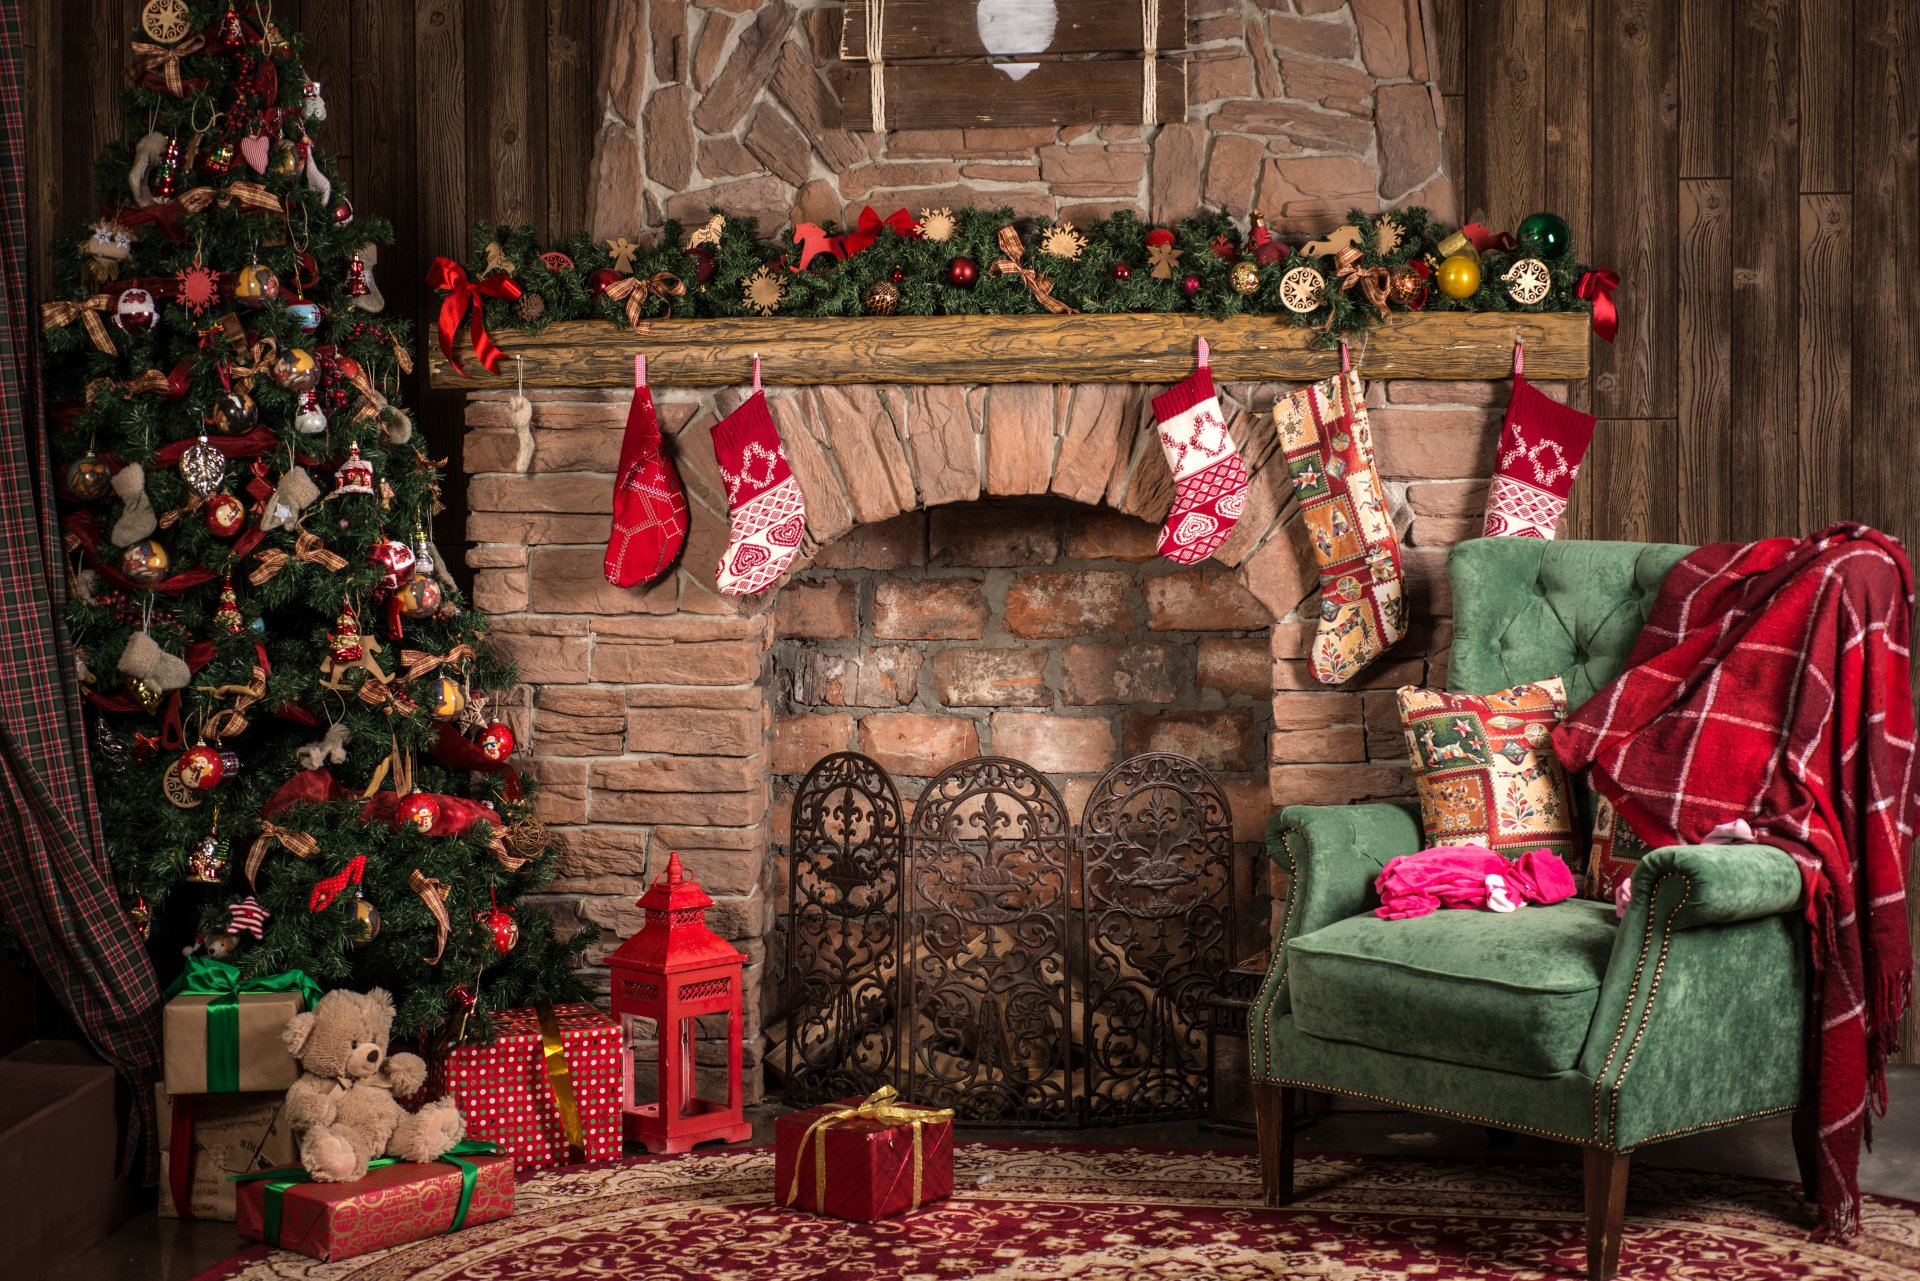 Home For Christmas 8k Ultra Hd Wallpaper Background